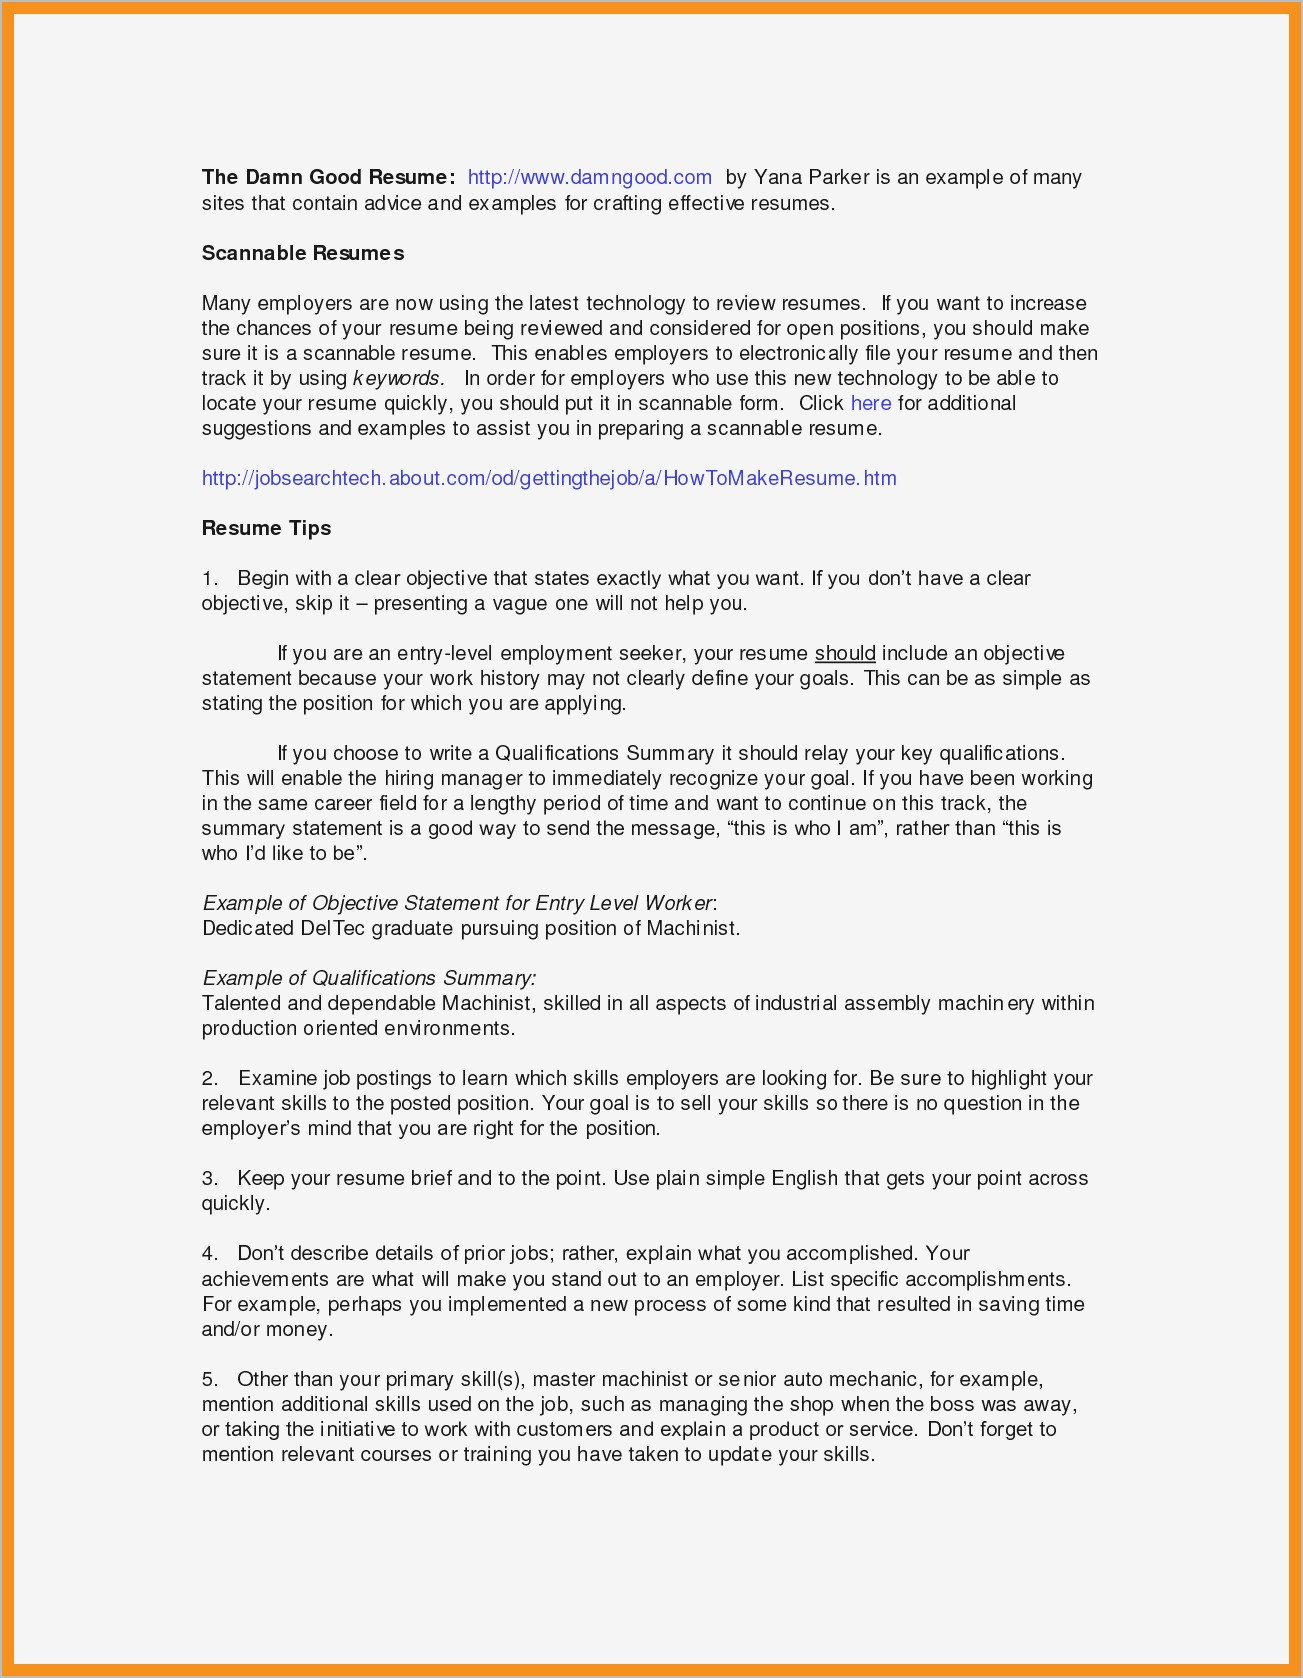 Resume Background Summary - Career Summary Resume Awesome Resume Career Overview Selo L Ink